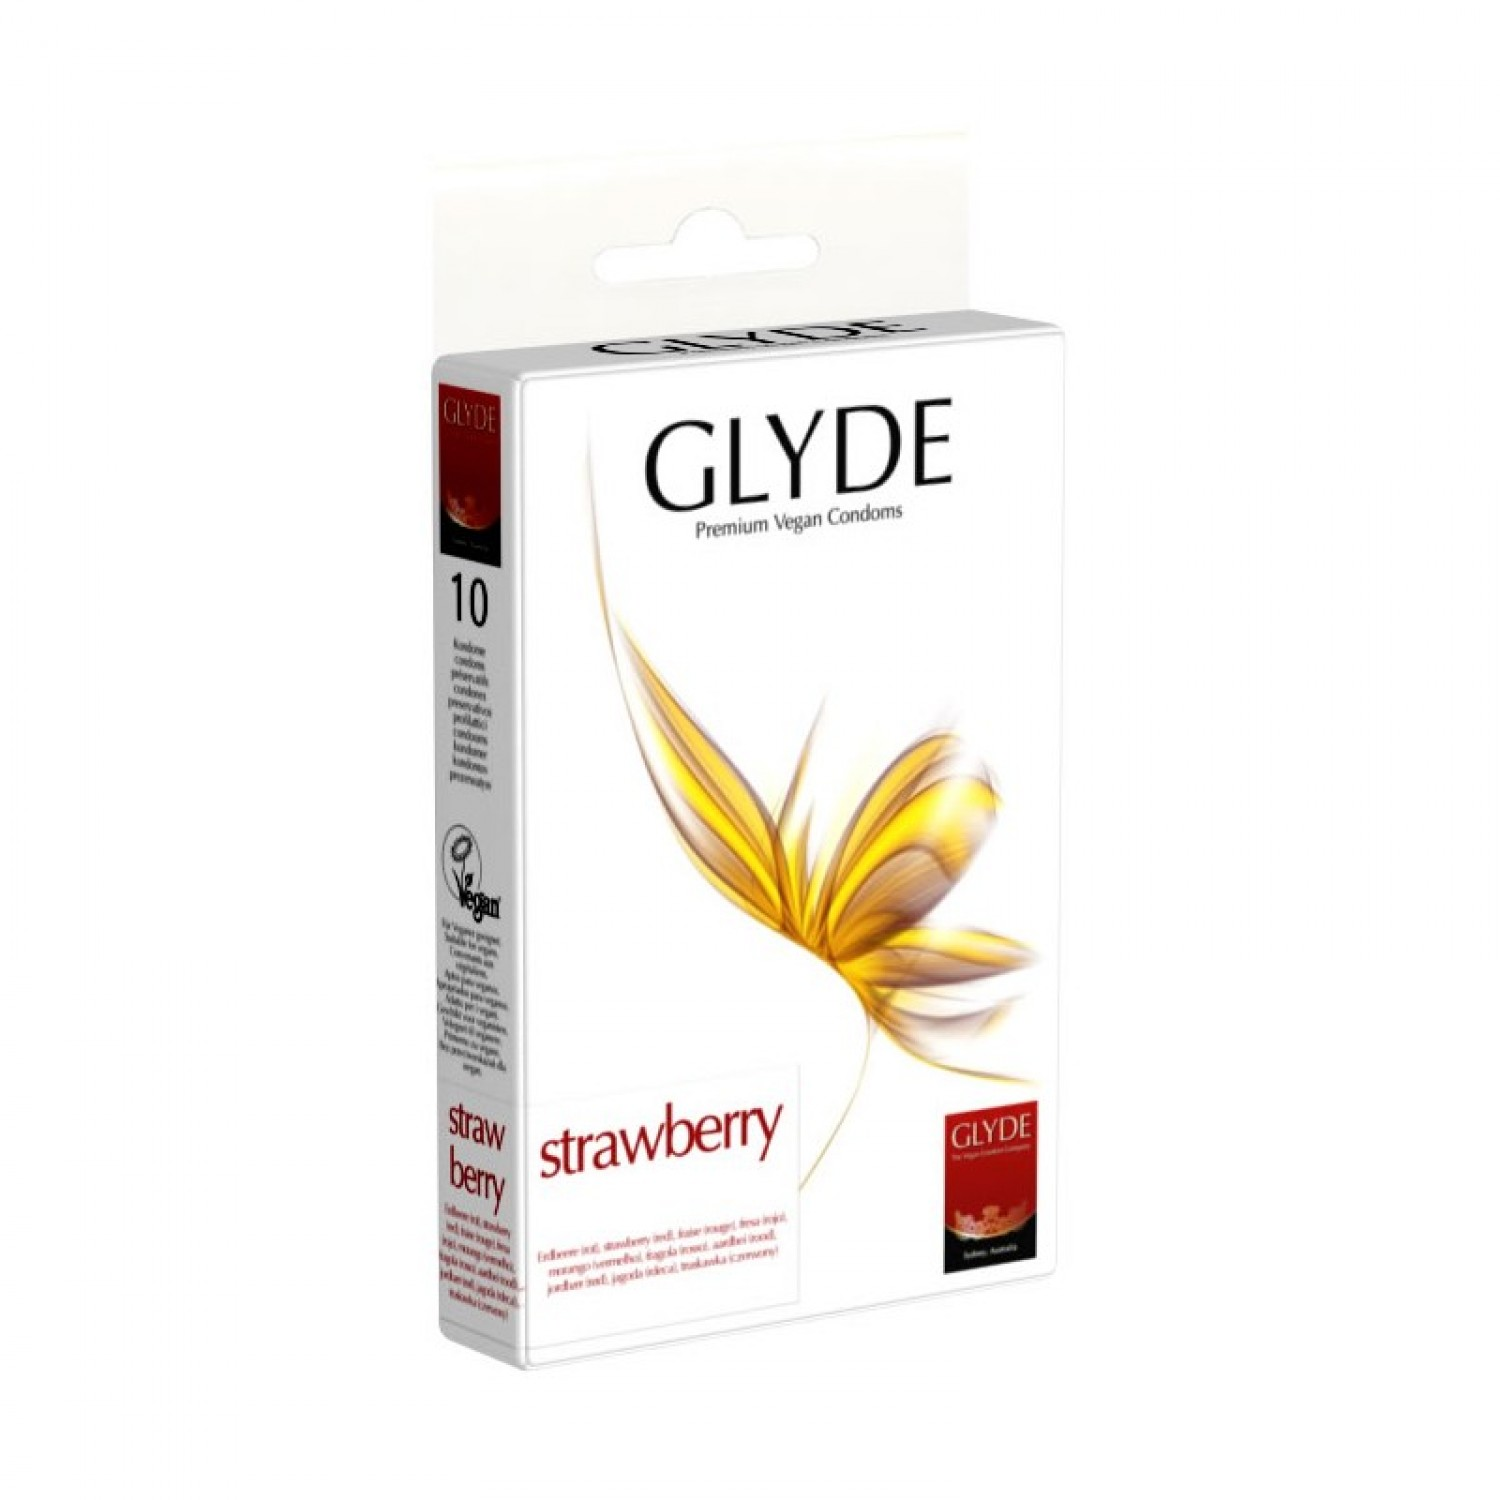 Natural rubber latex Vegan Condoms Strawberry | Glyde